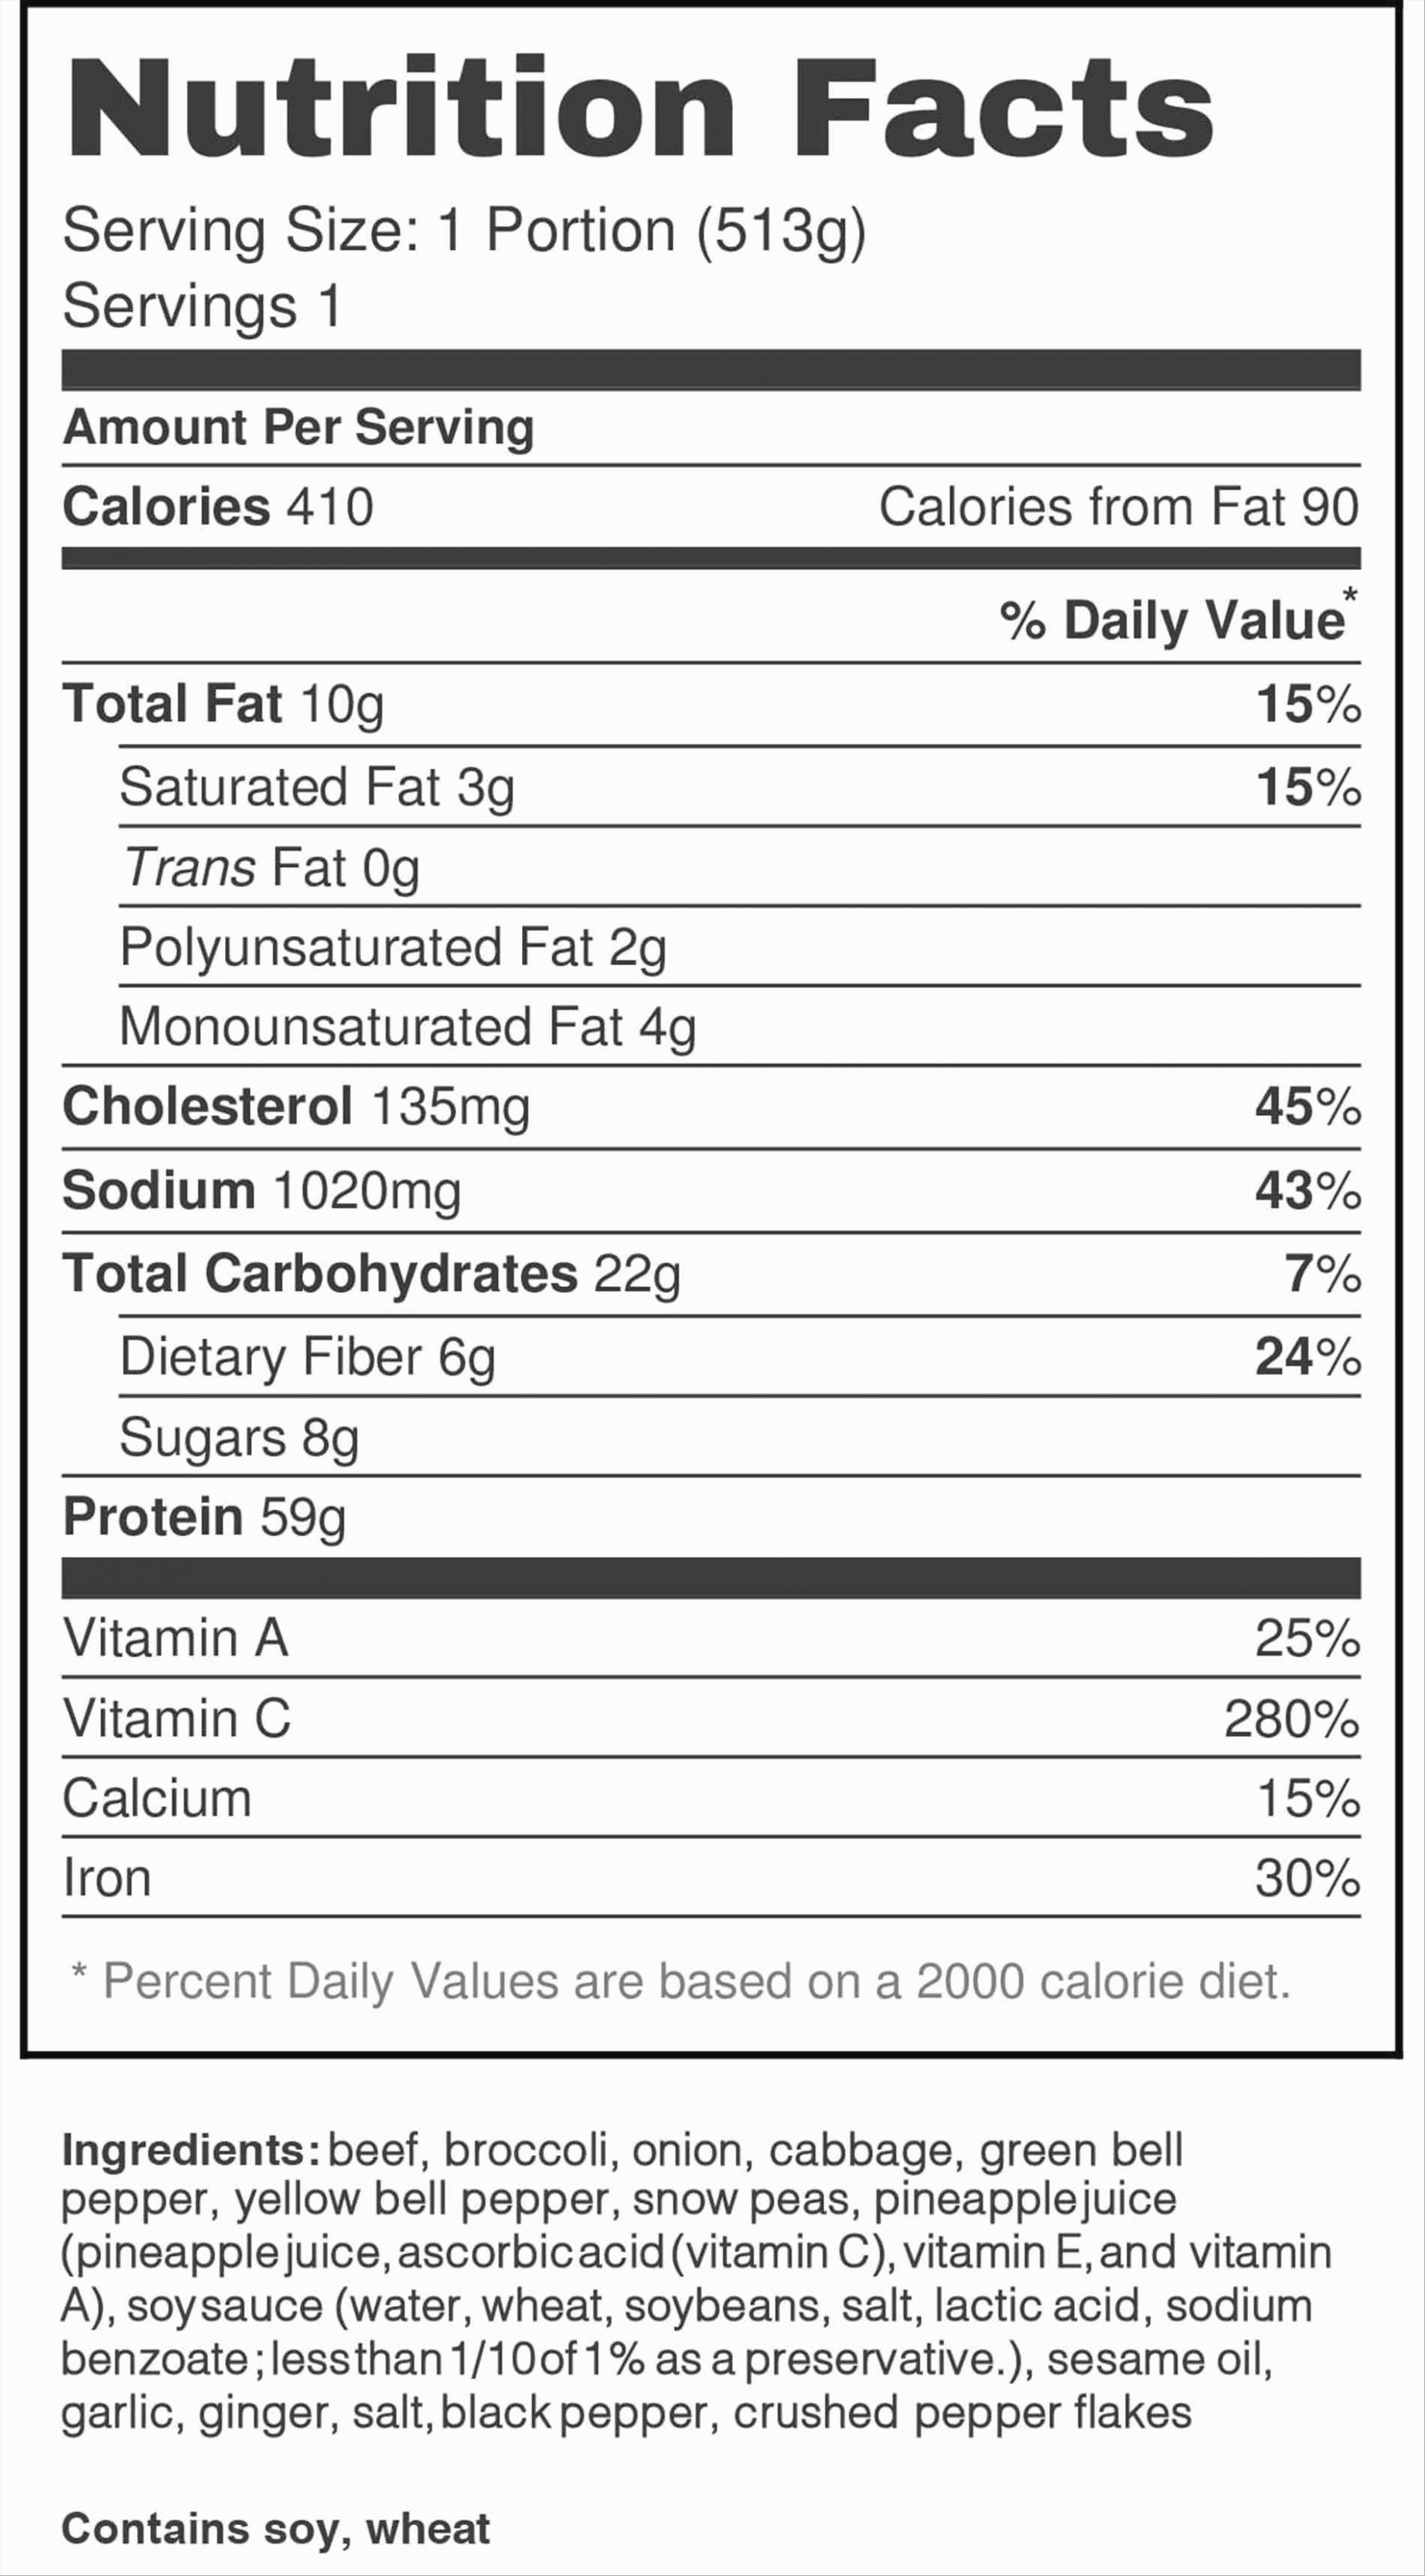 Nutrition Facts Label Template Excel Fresh why You Must Experience